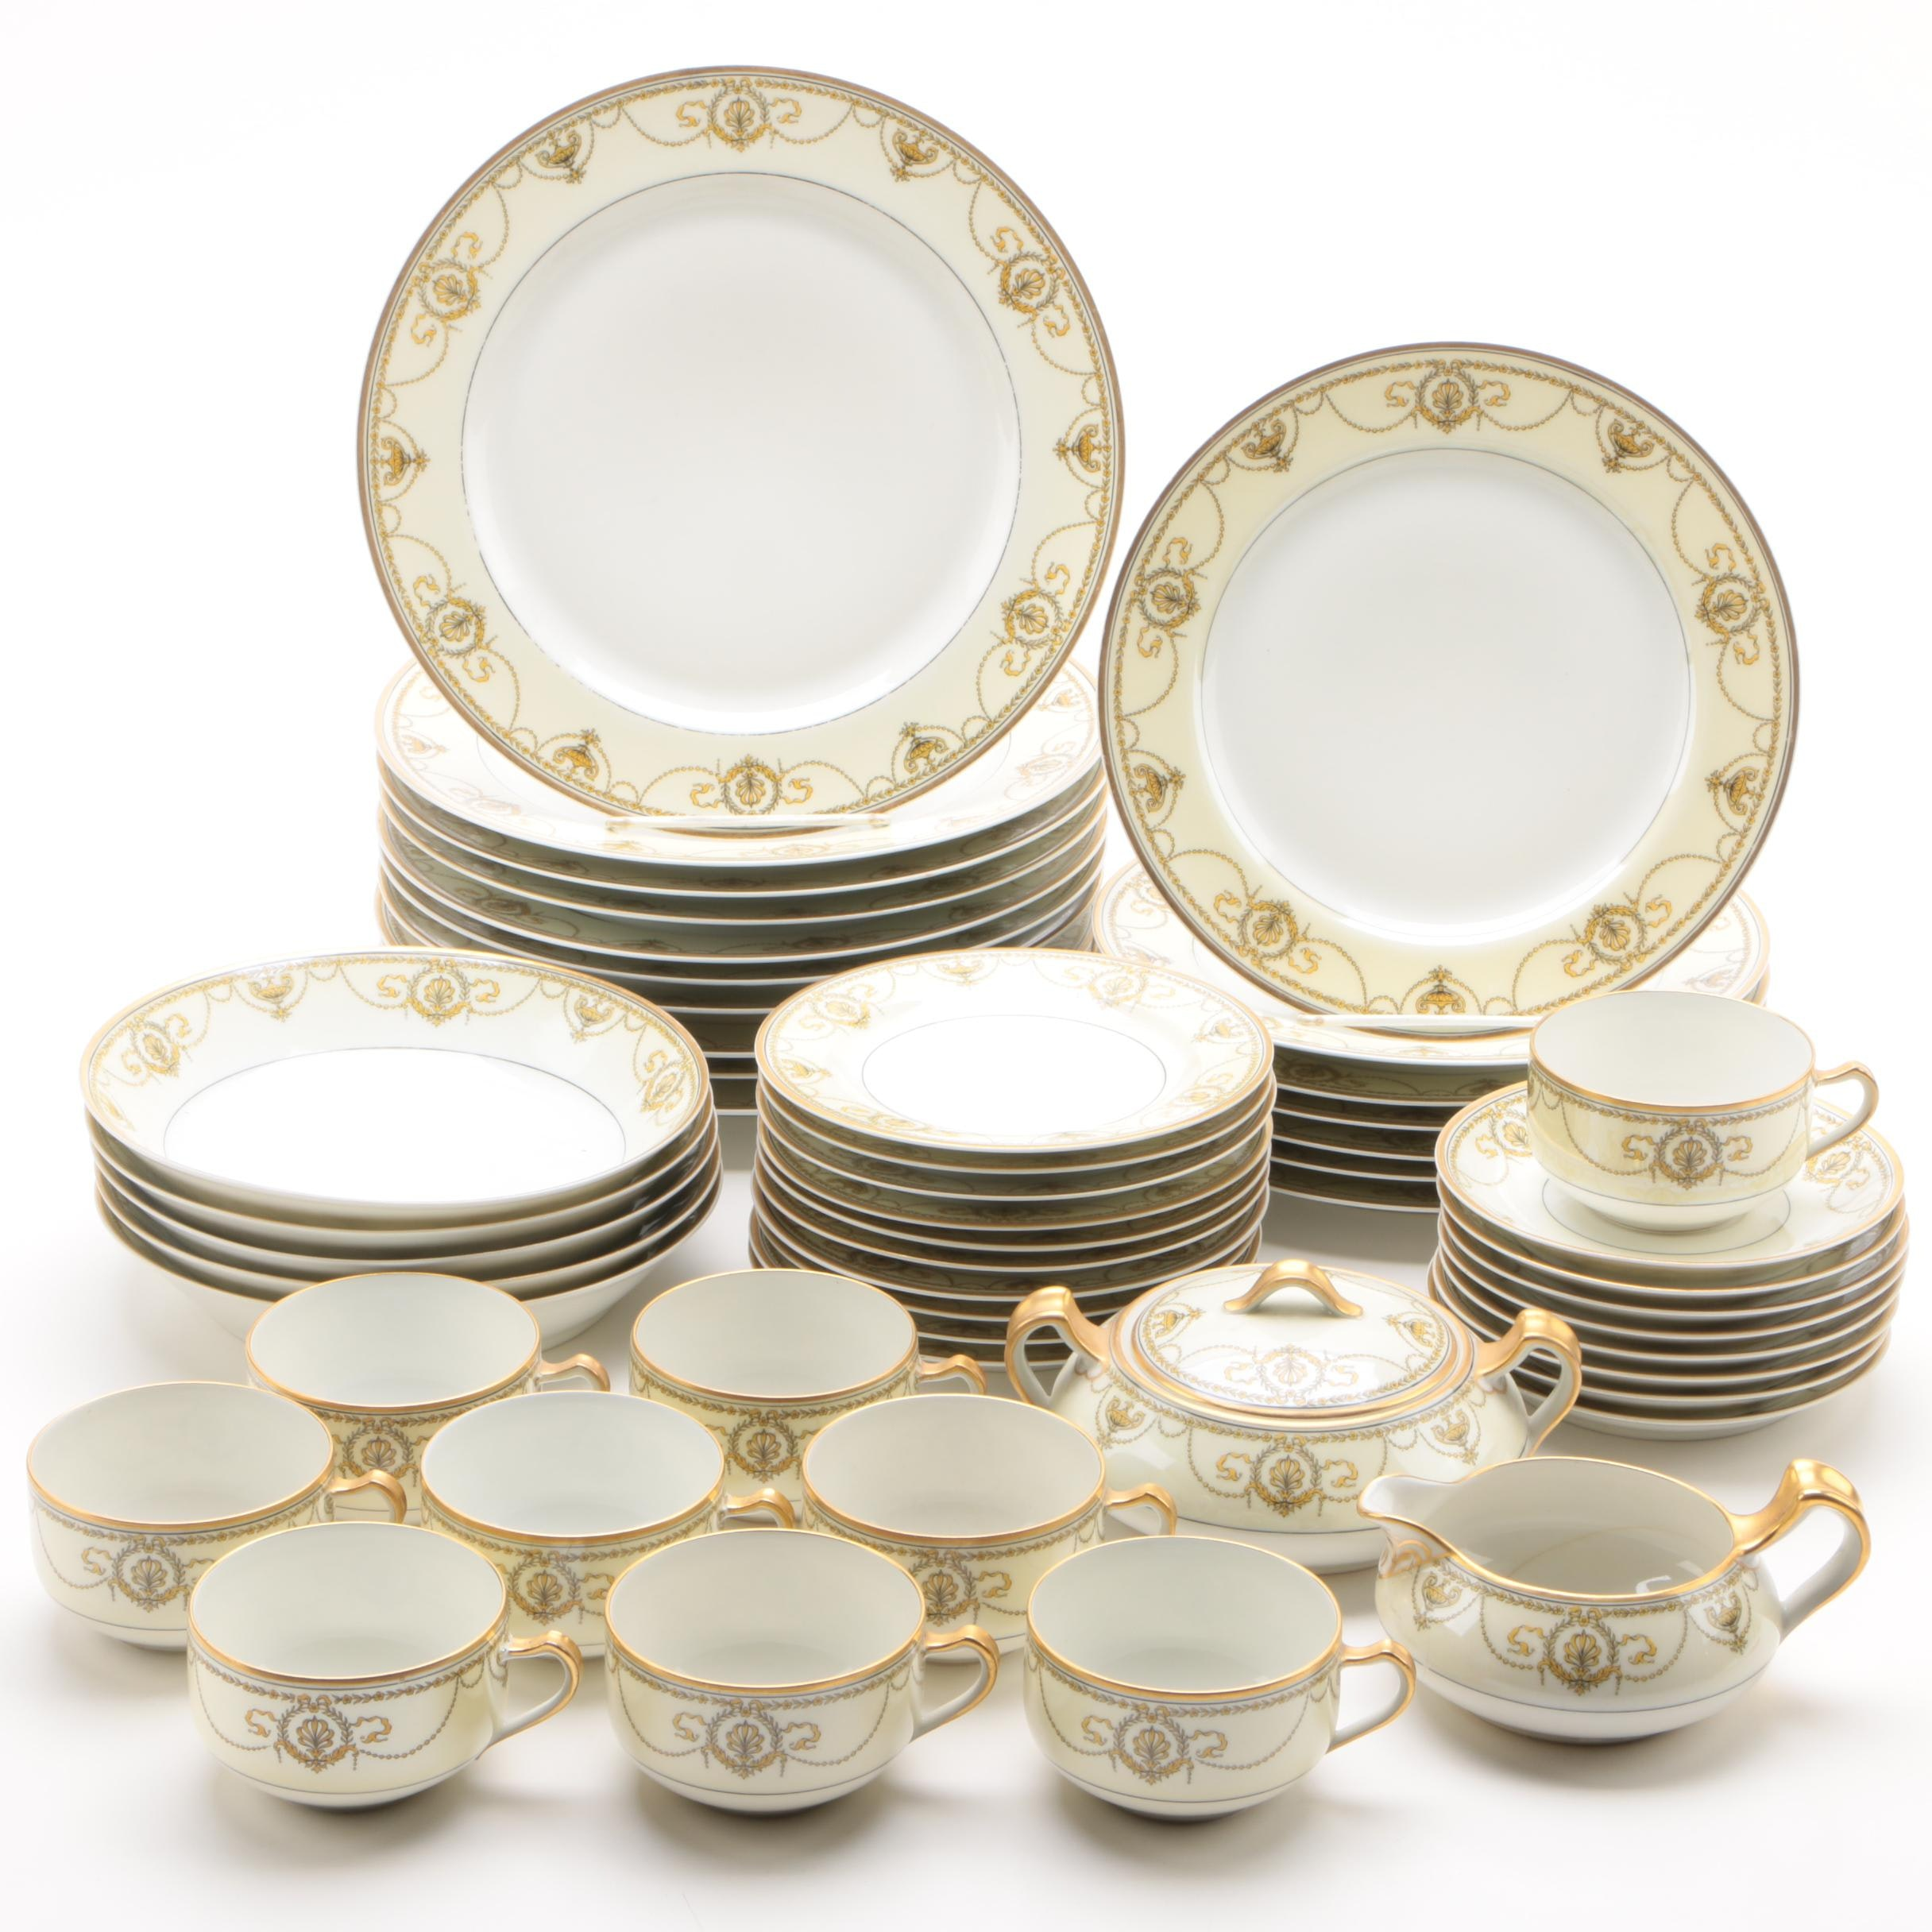 "Haviland Limoges ""Eugenie"" Porcelain Dinnerware c. 1889-1931"